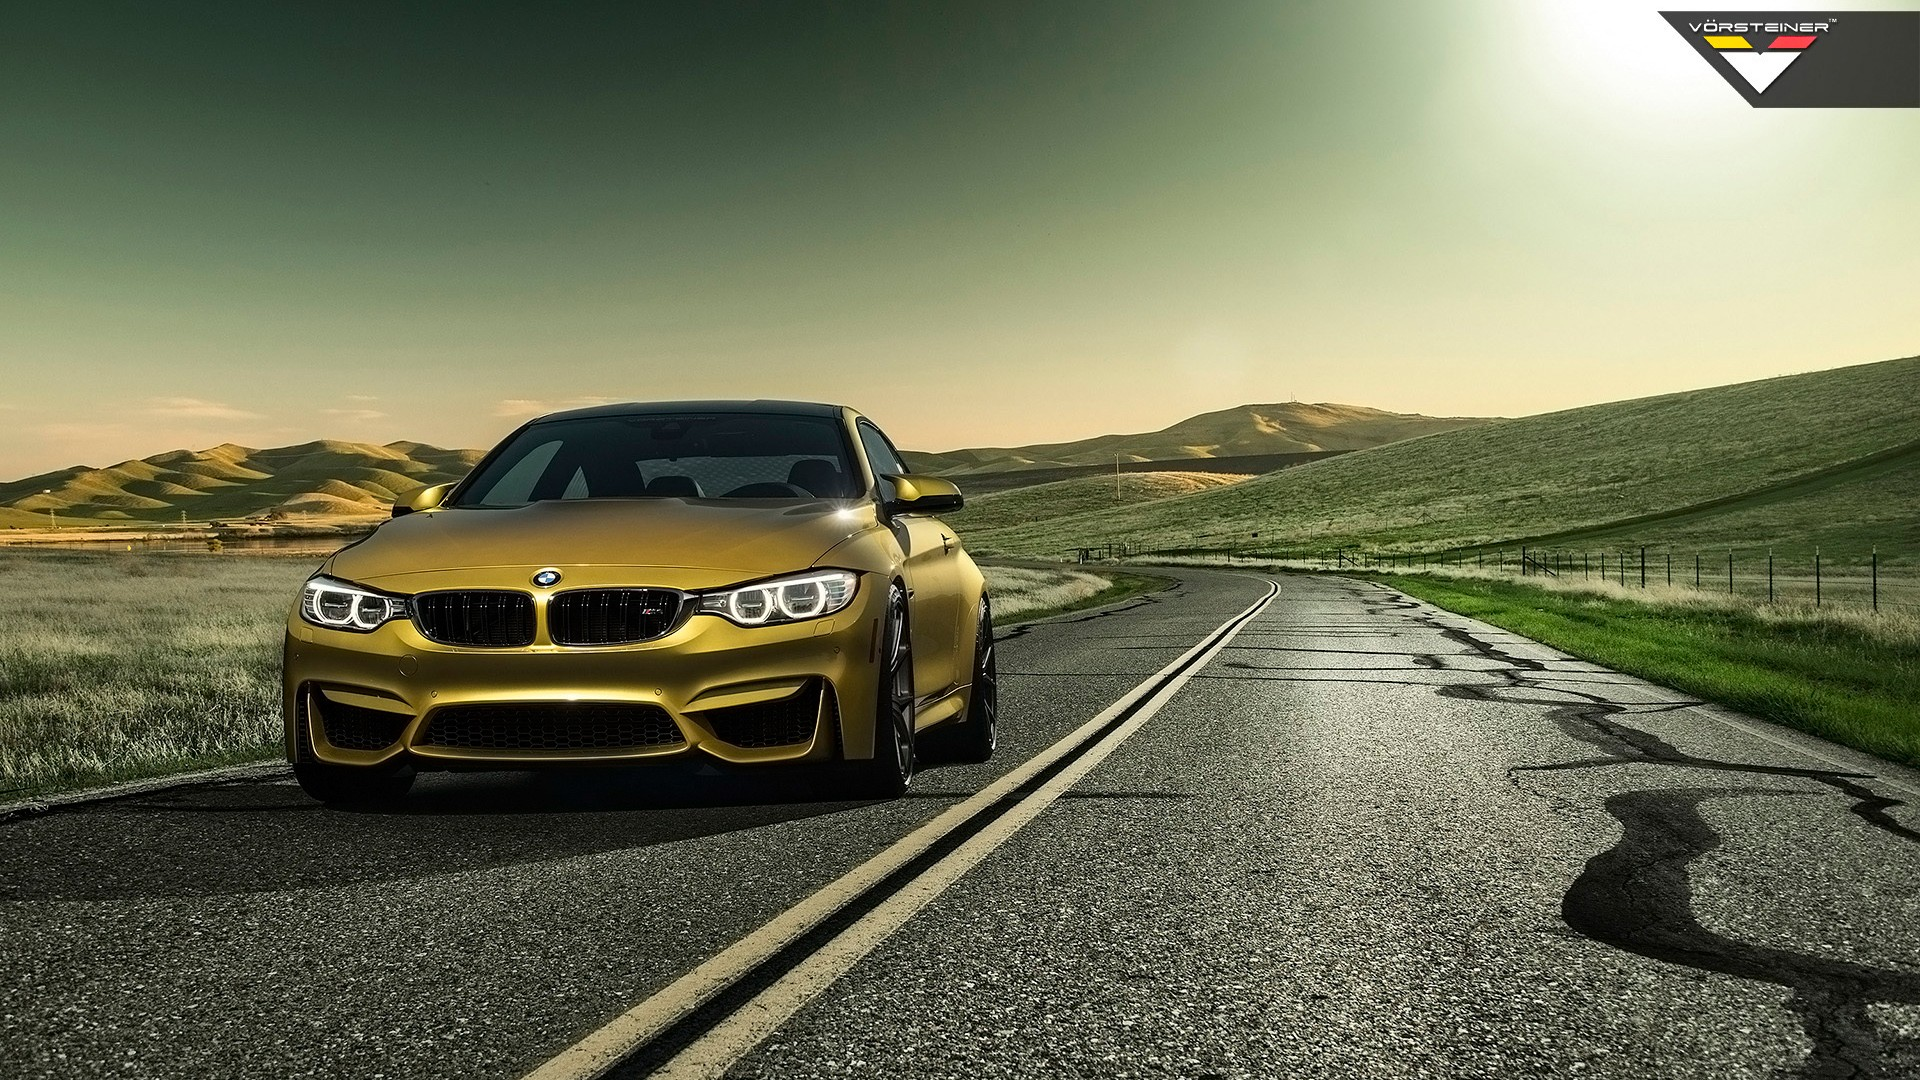 2014 vorsteiner bmw m4 austin yellow wallpaper